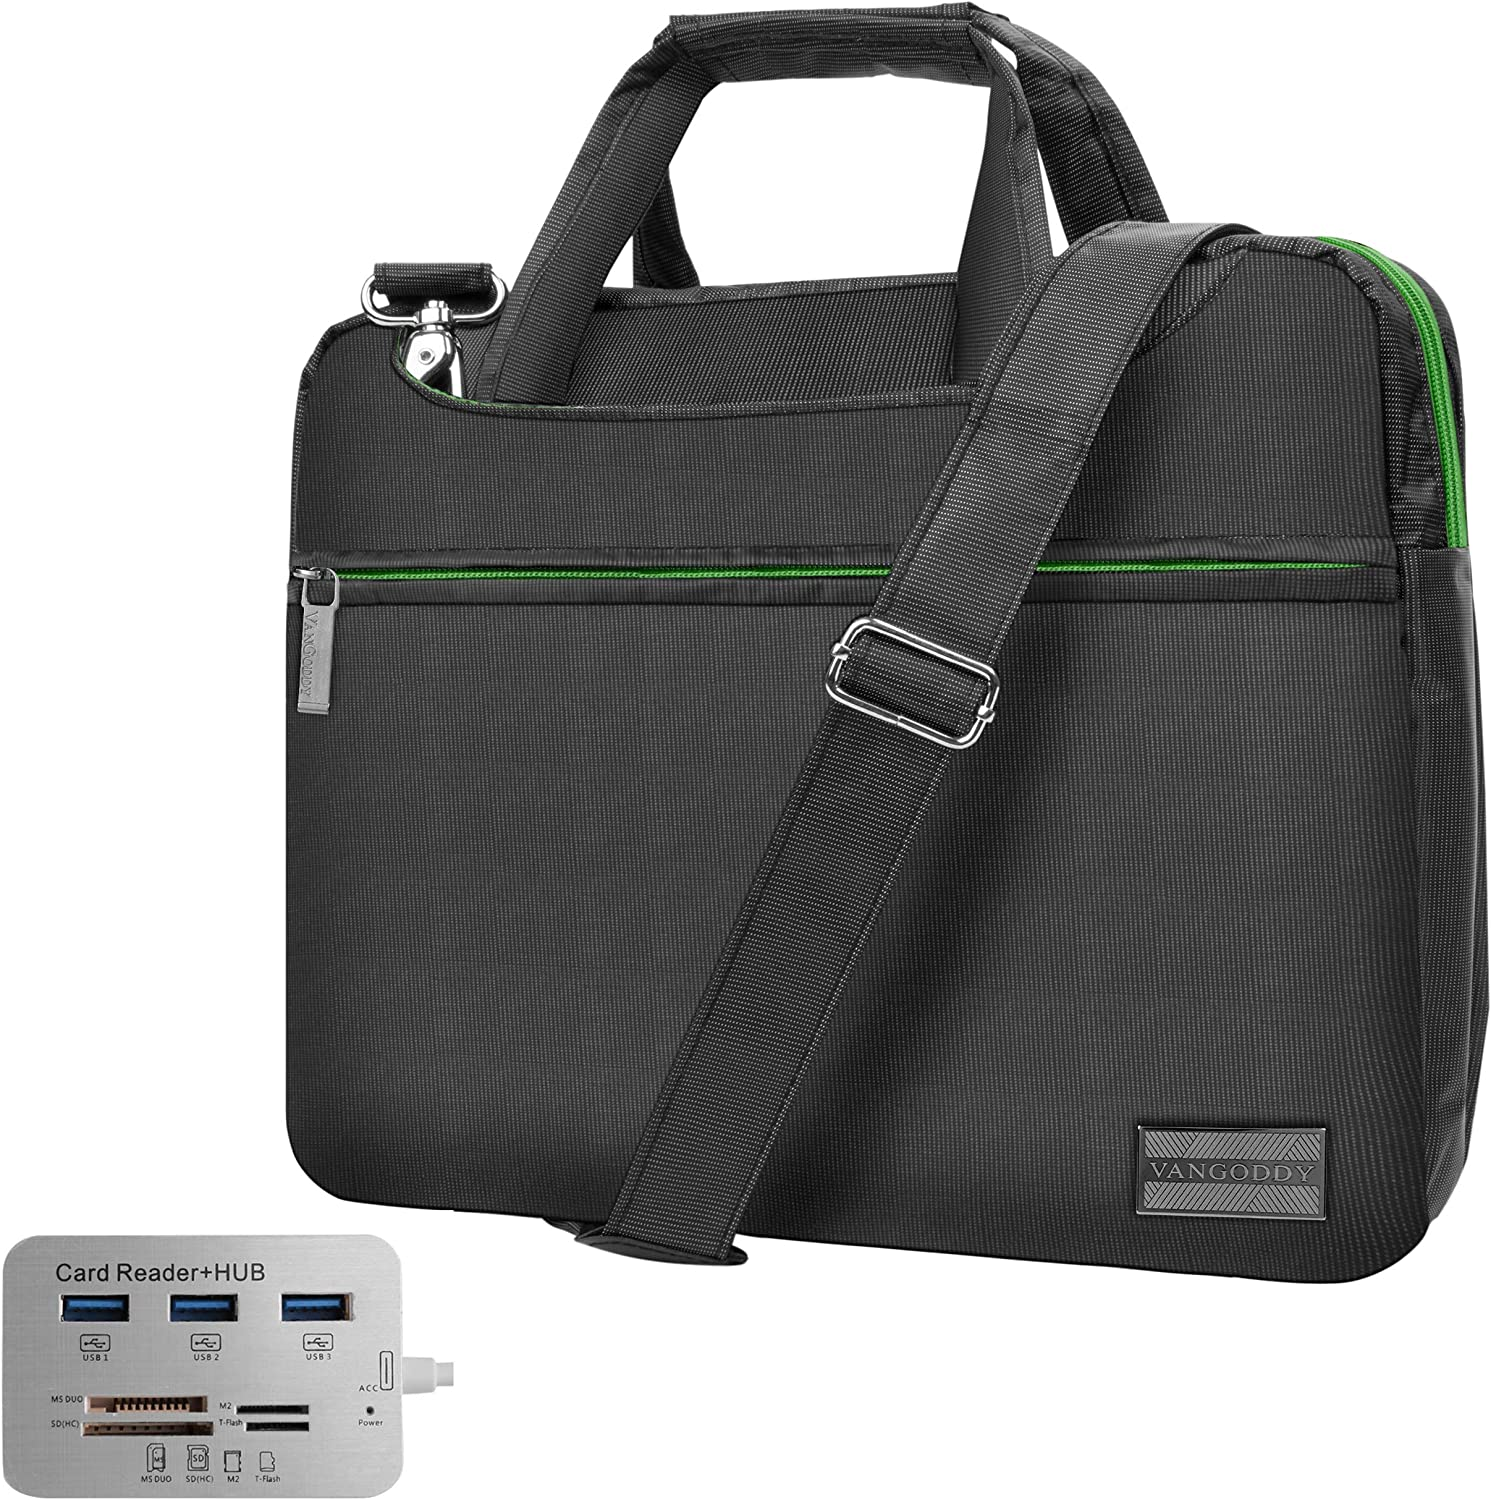 Green 13.3 inch Laptop Bag, USB C Hub for Lenovo IdeaPad, N, ThinkBook, ThinkPad, Yoga, 500e 100e 300e ChromeBook